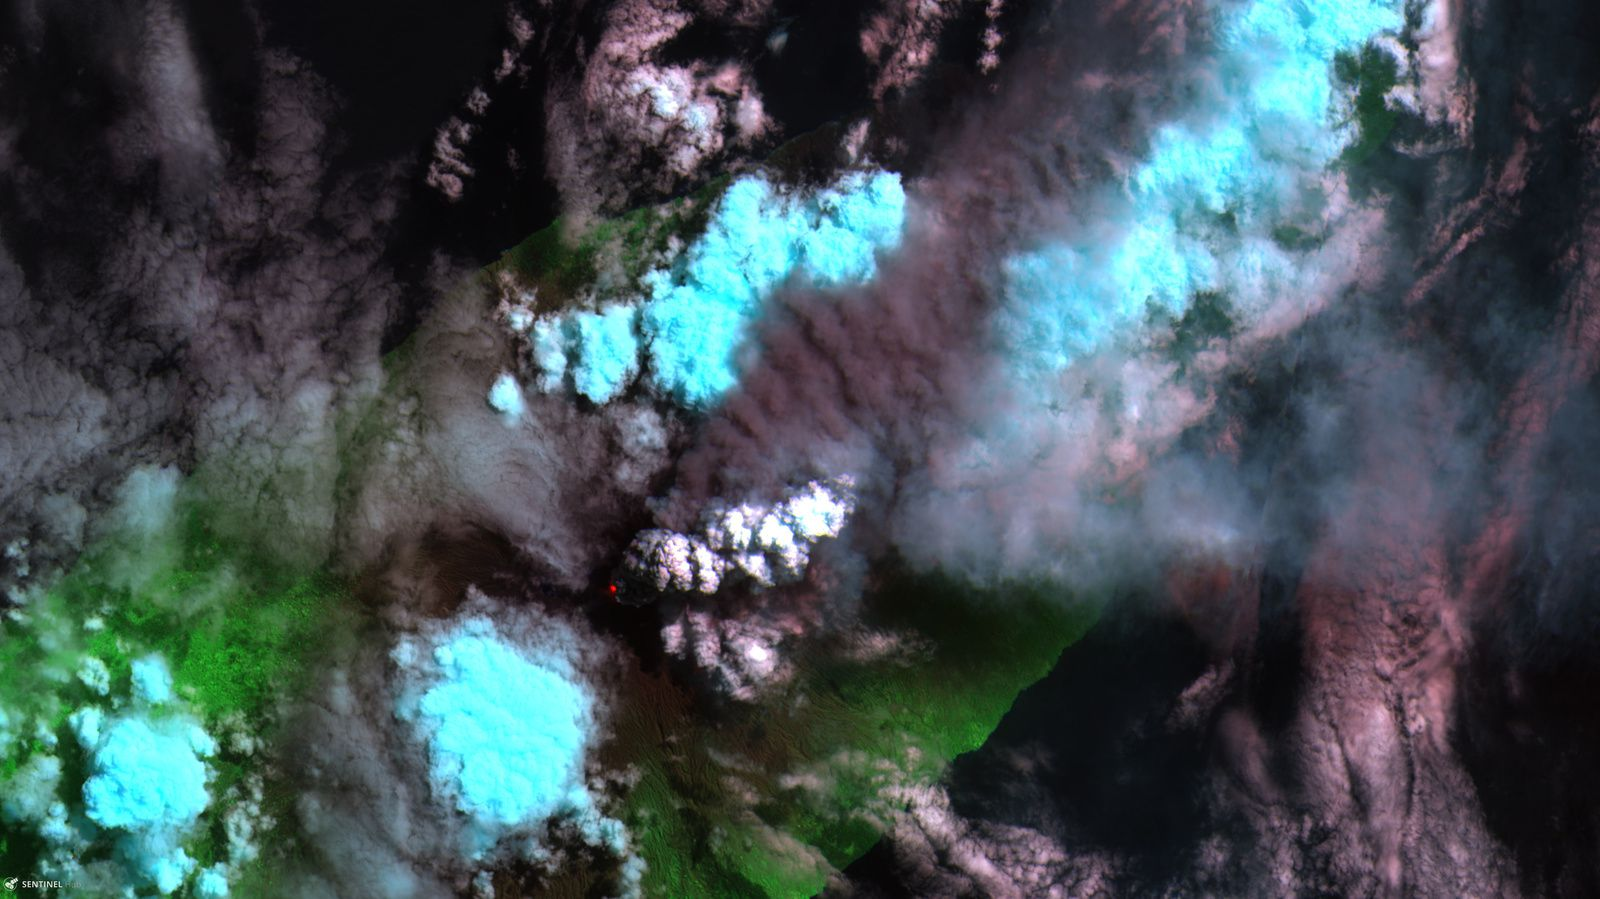 Ambae volcano - 09.04.2018 -  Sentinel-2 L1C - Contains modified Copernicus Sentinel data [2018], processed by Pierre Markuse / flickr